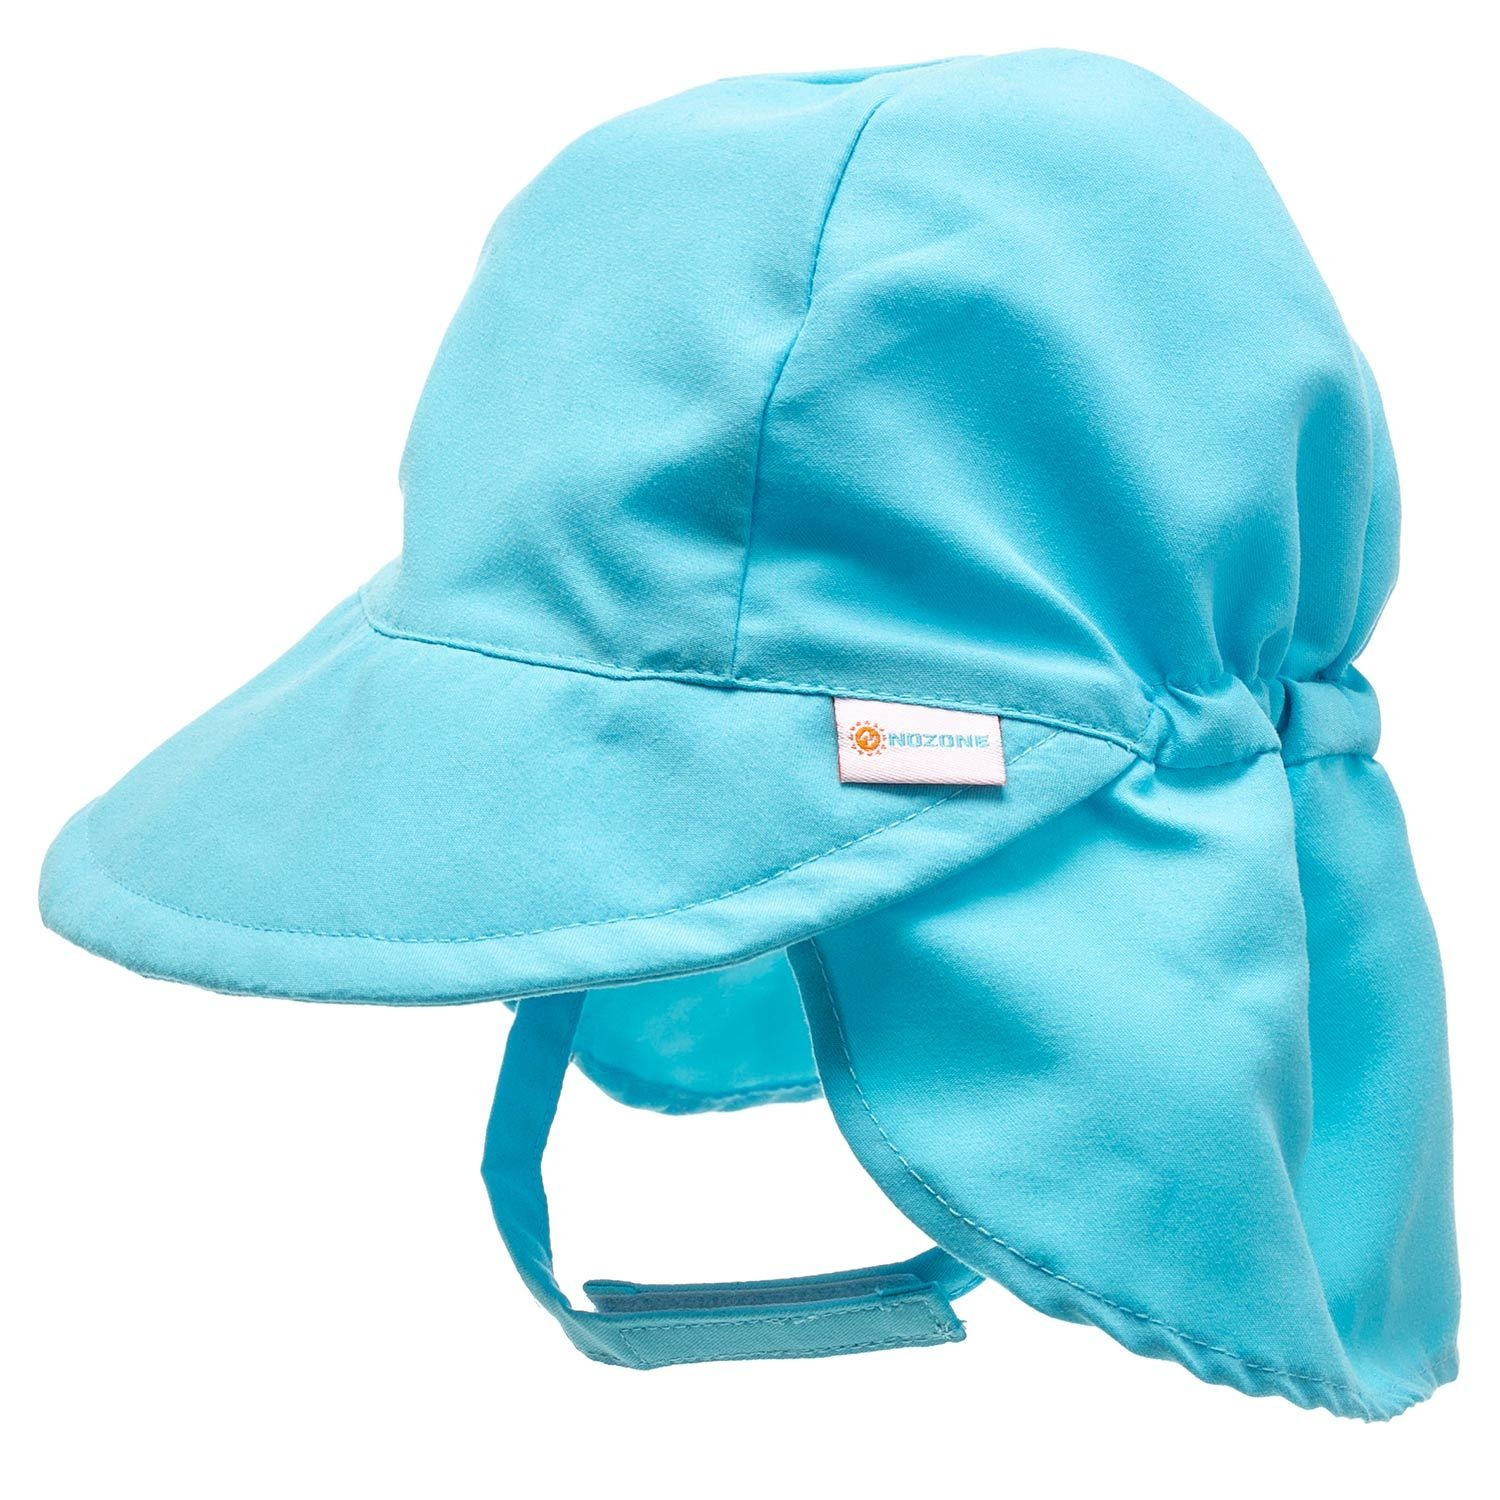 95500890 Light Blue Baby Flap Sunhat - Sweetpea Wholesome Baby